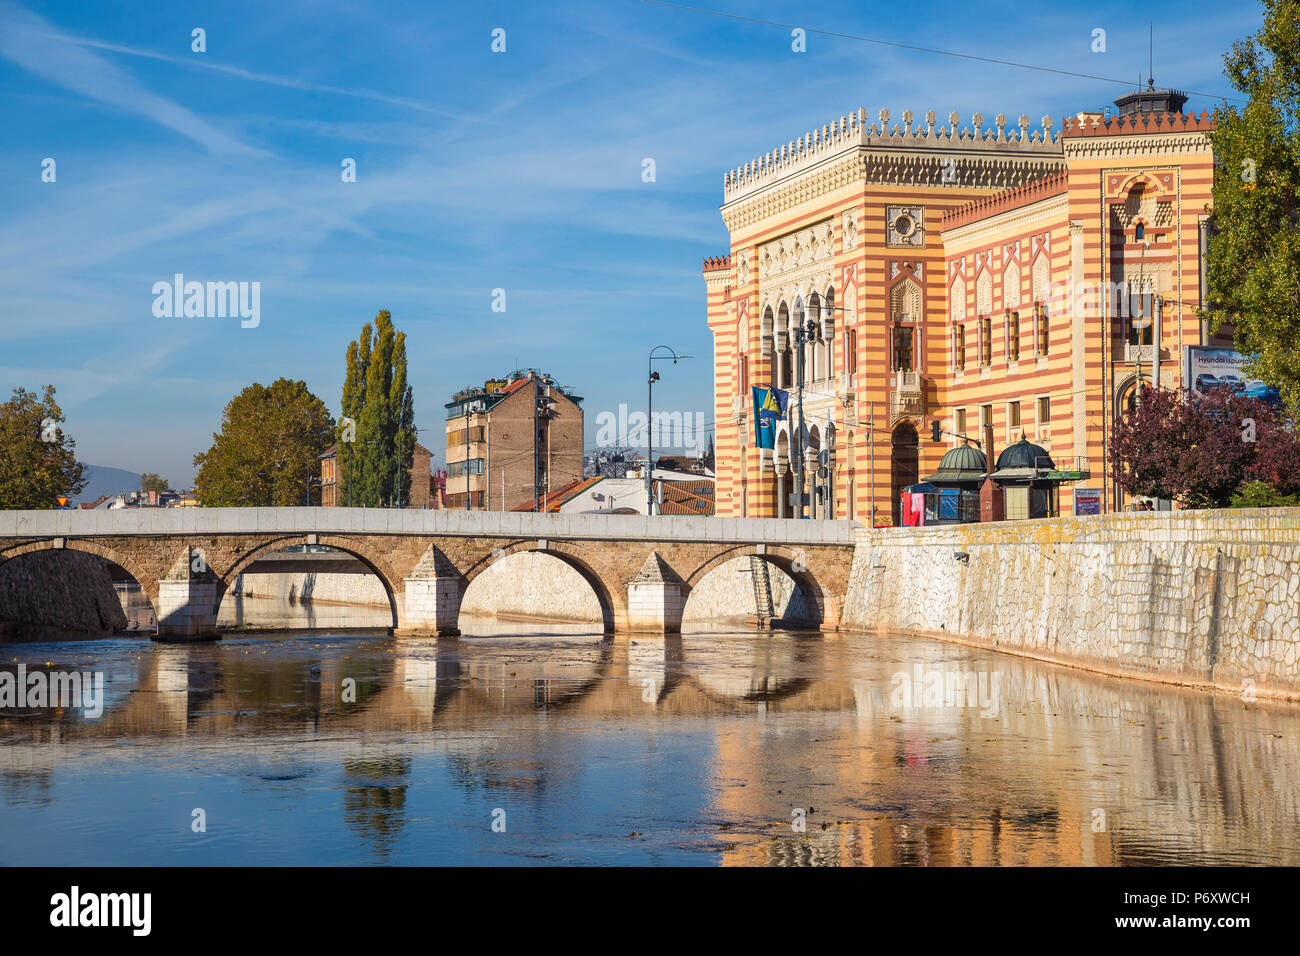 Bosnia and Herzegovina, Sarajevo, Bascarsija - The Old Quarter, Town Hall (Vijecnica) - Stock Image